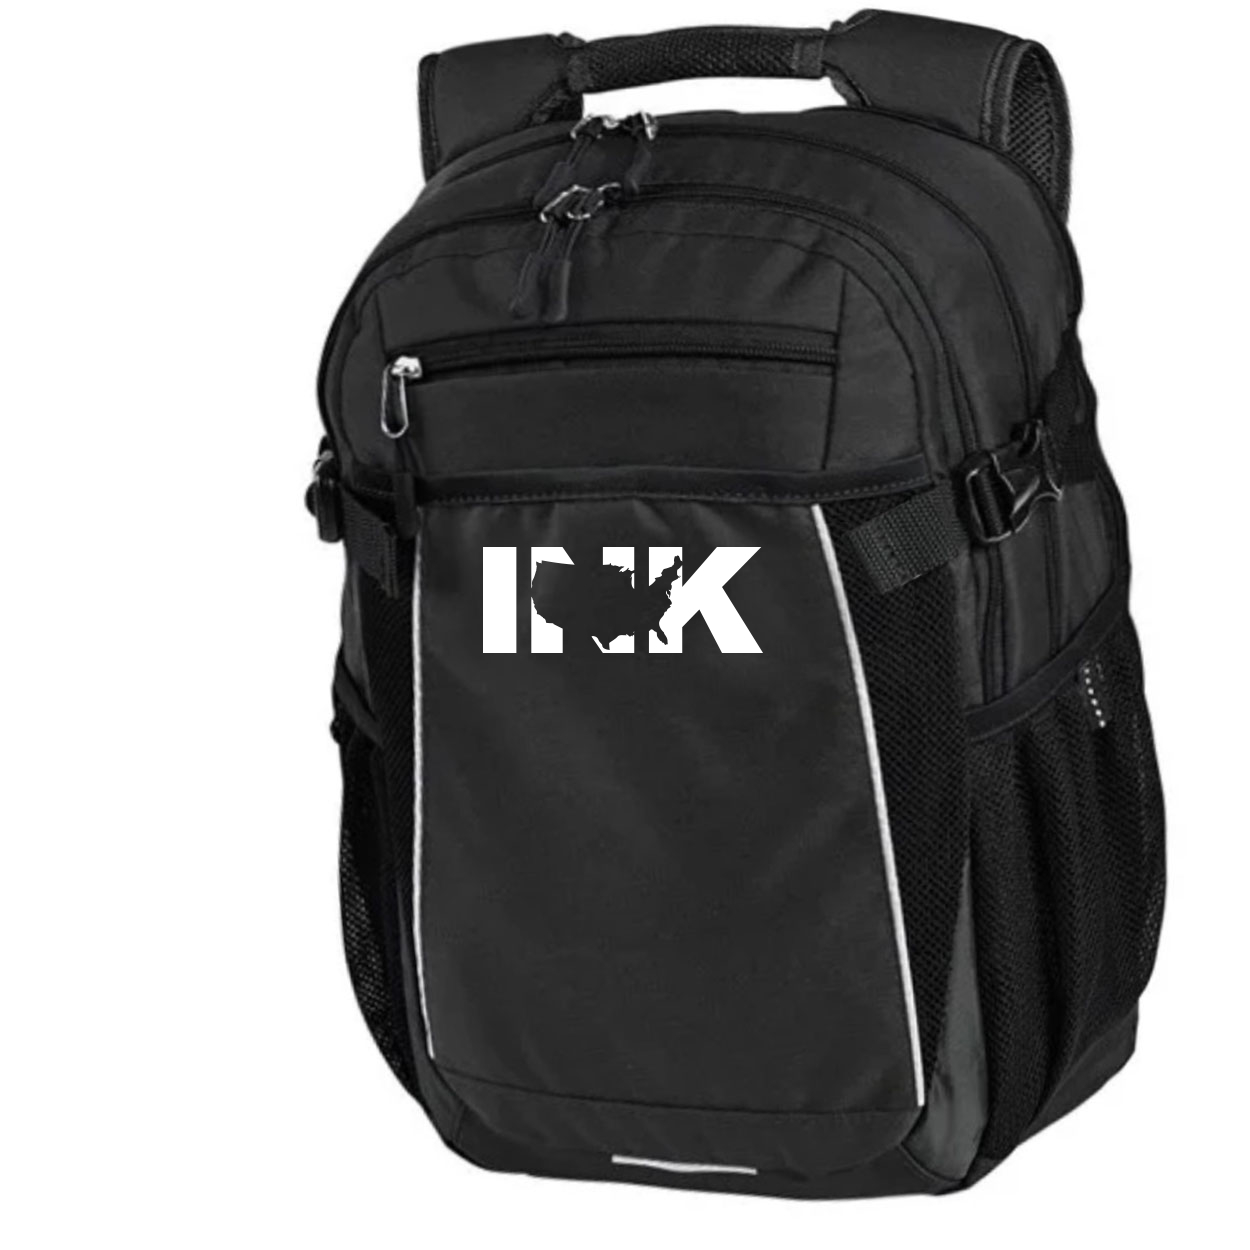 Ink United States Classic Pro Pioneer Backpack Black (White Logo)